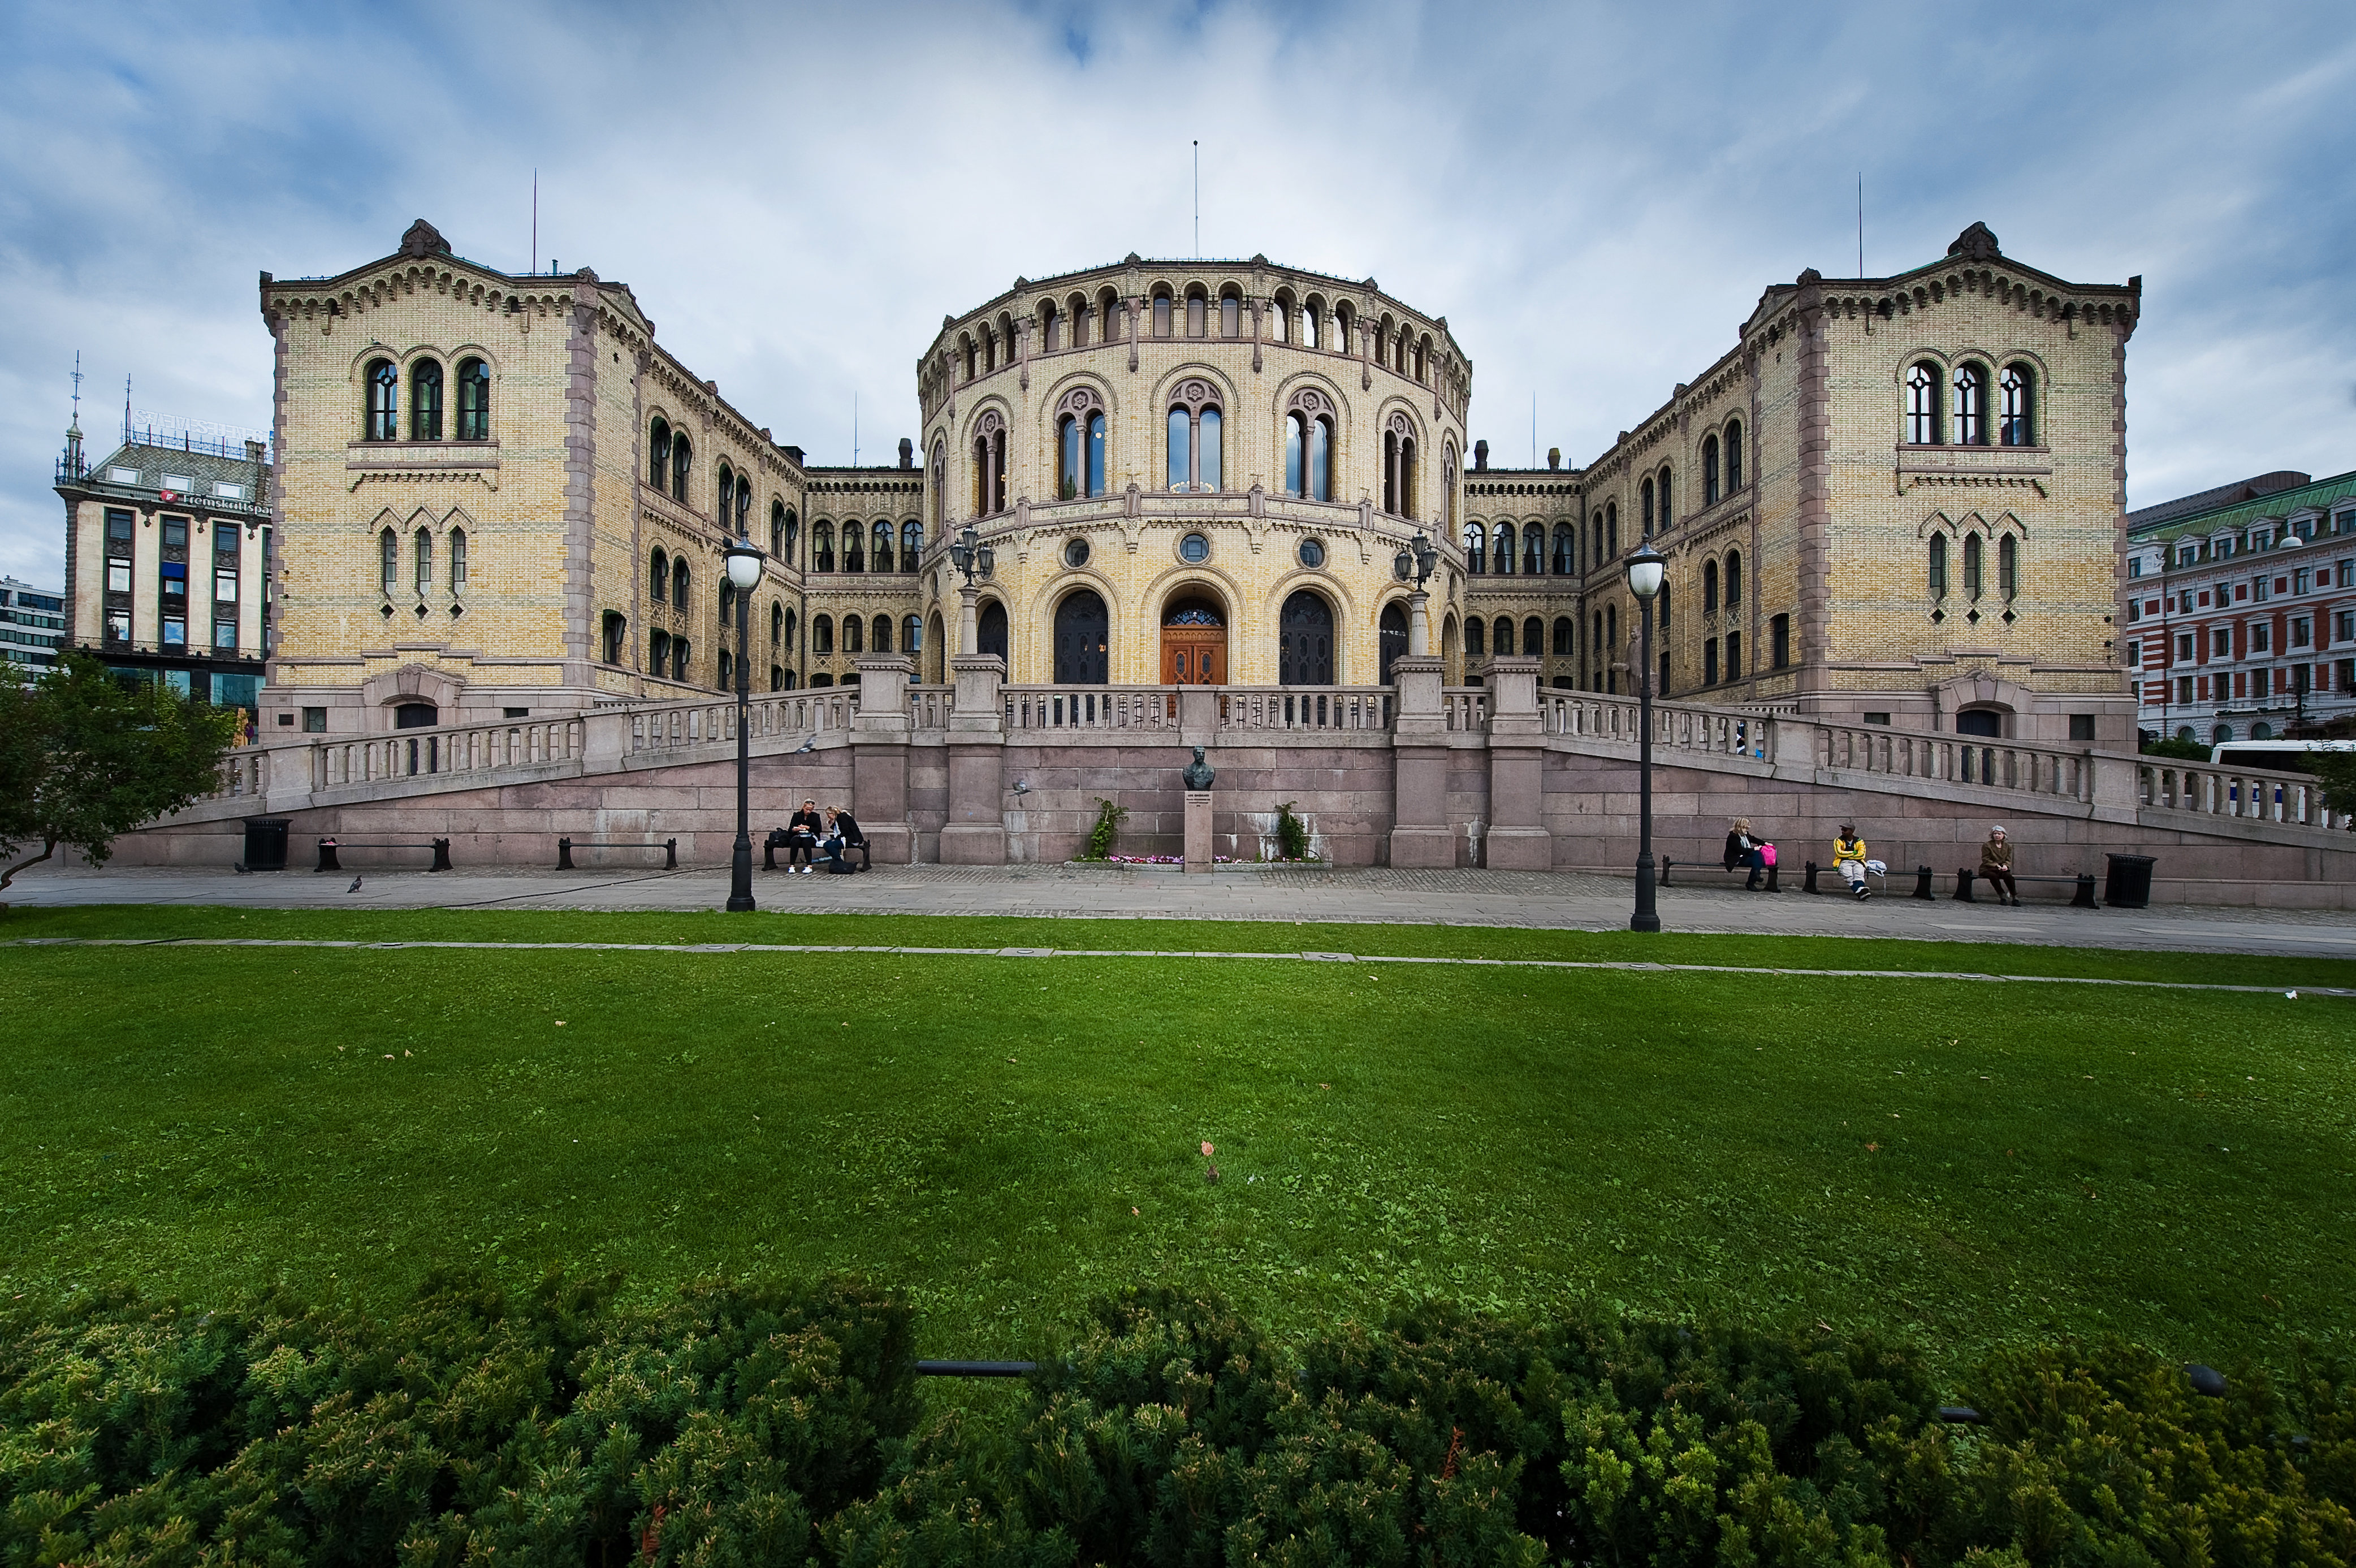 Picture of the parliament (Stortinget)